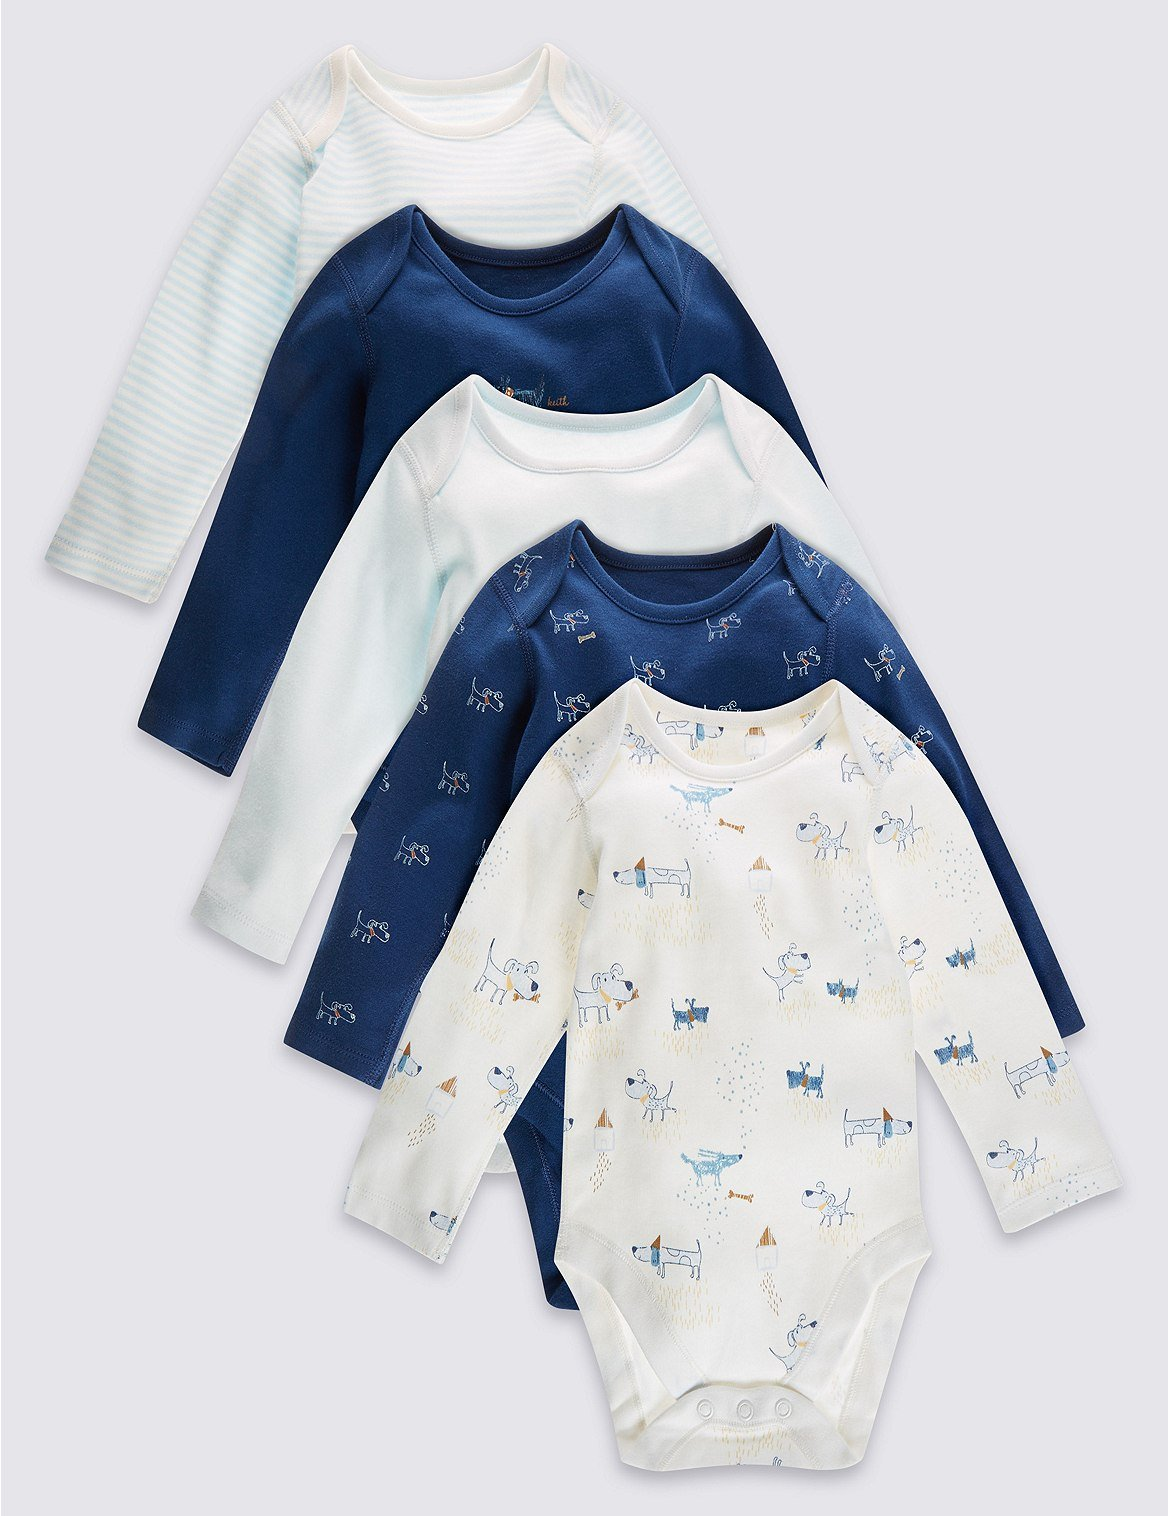 M&S Baby Boys 5 Pack Pure Cotton Layette Long Sleeved Bodysuit